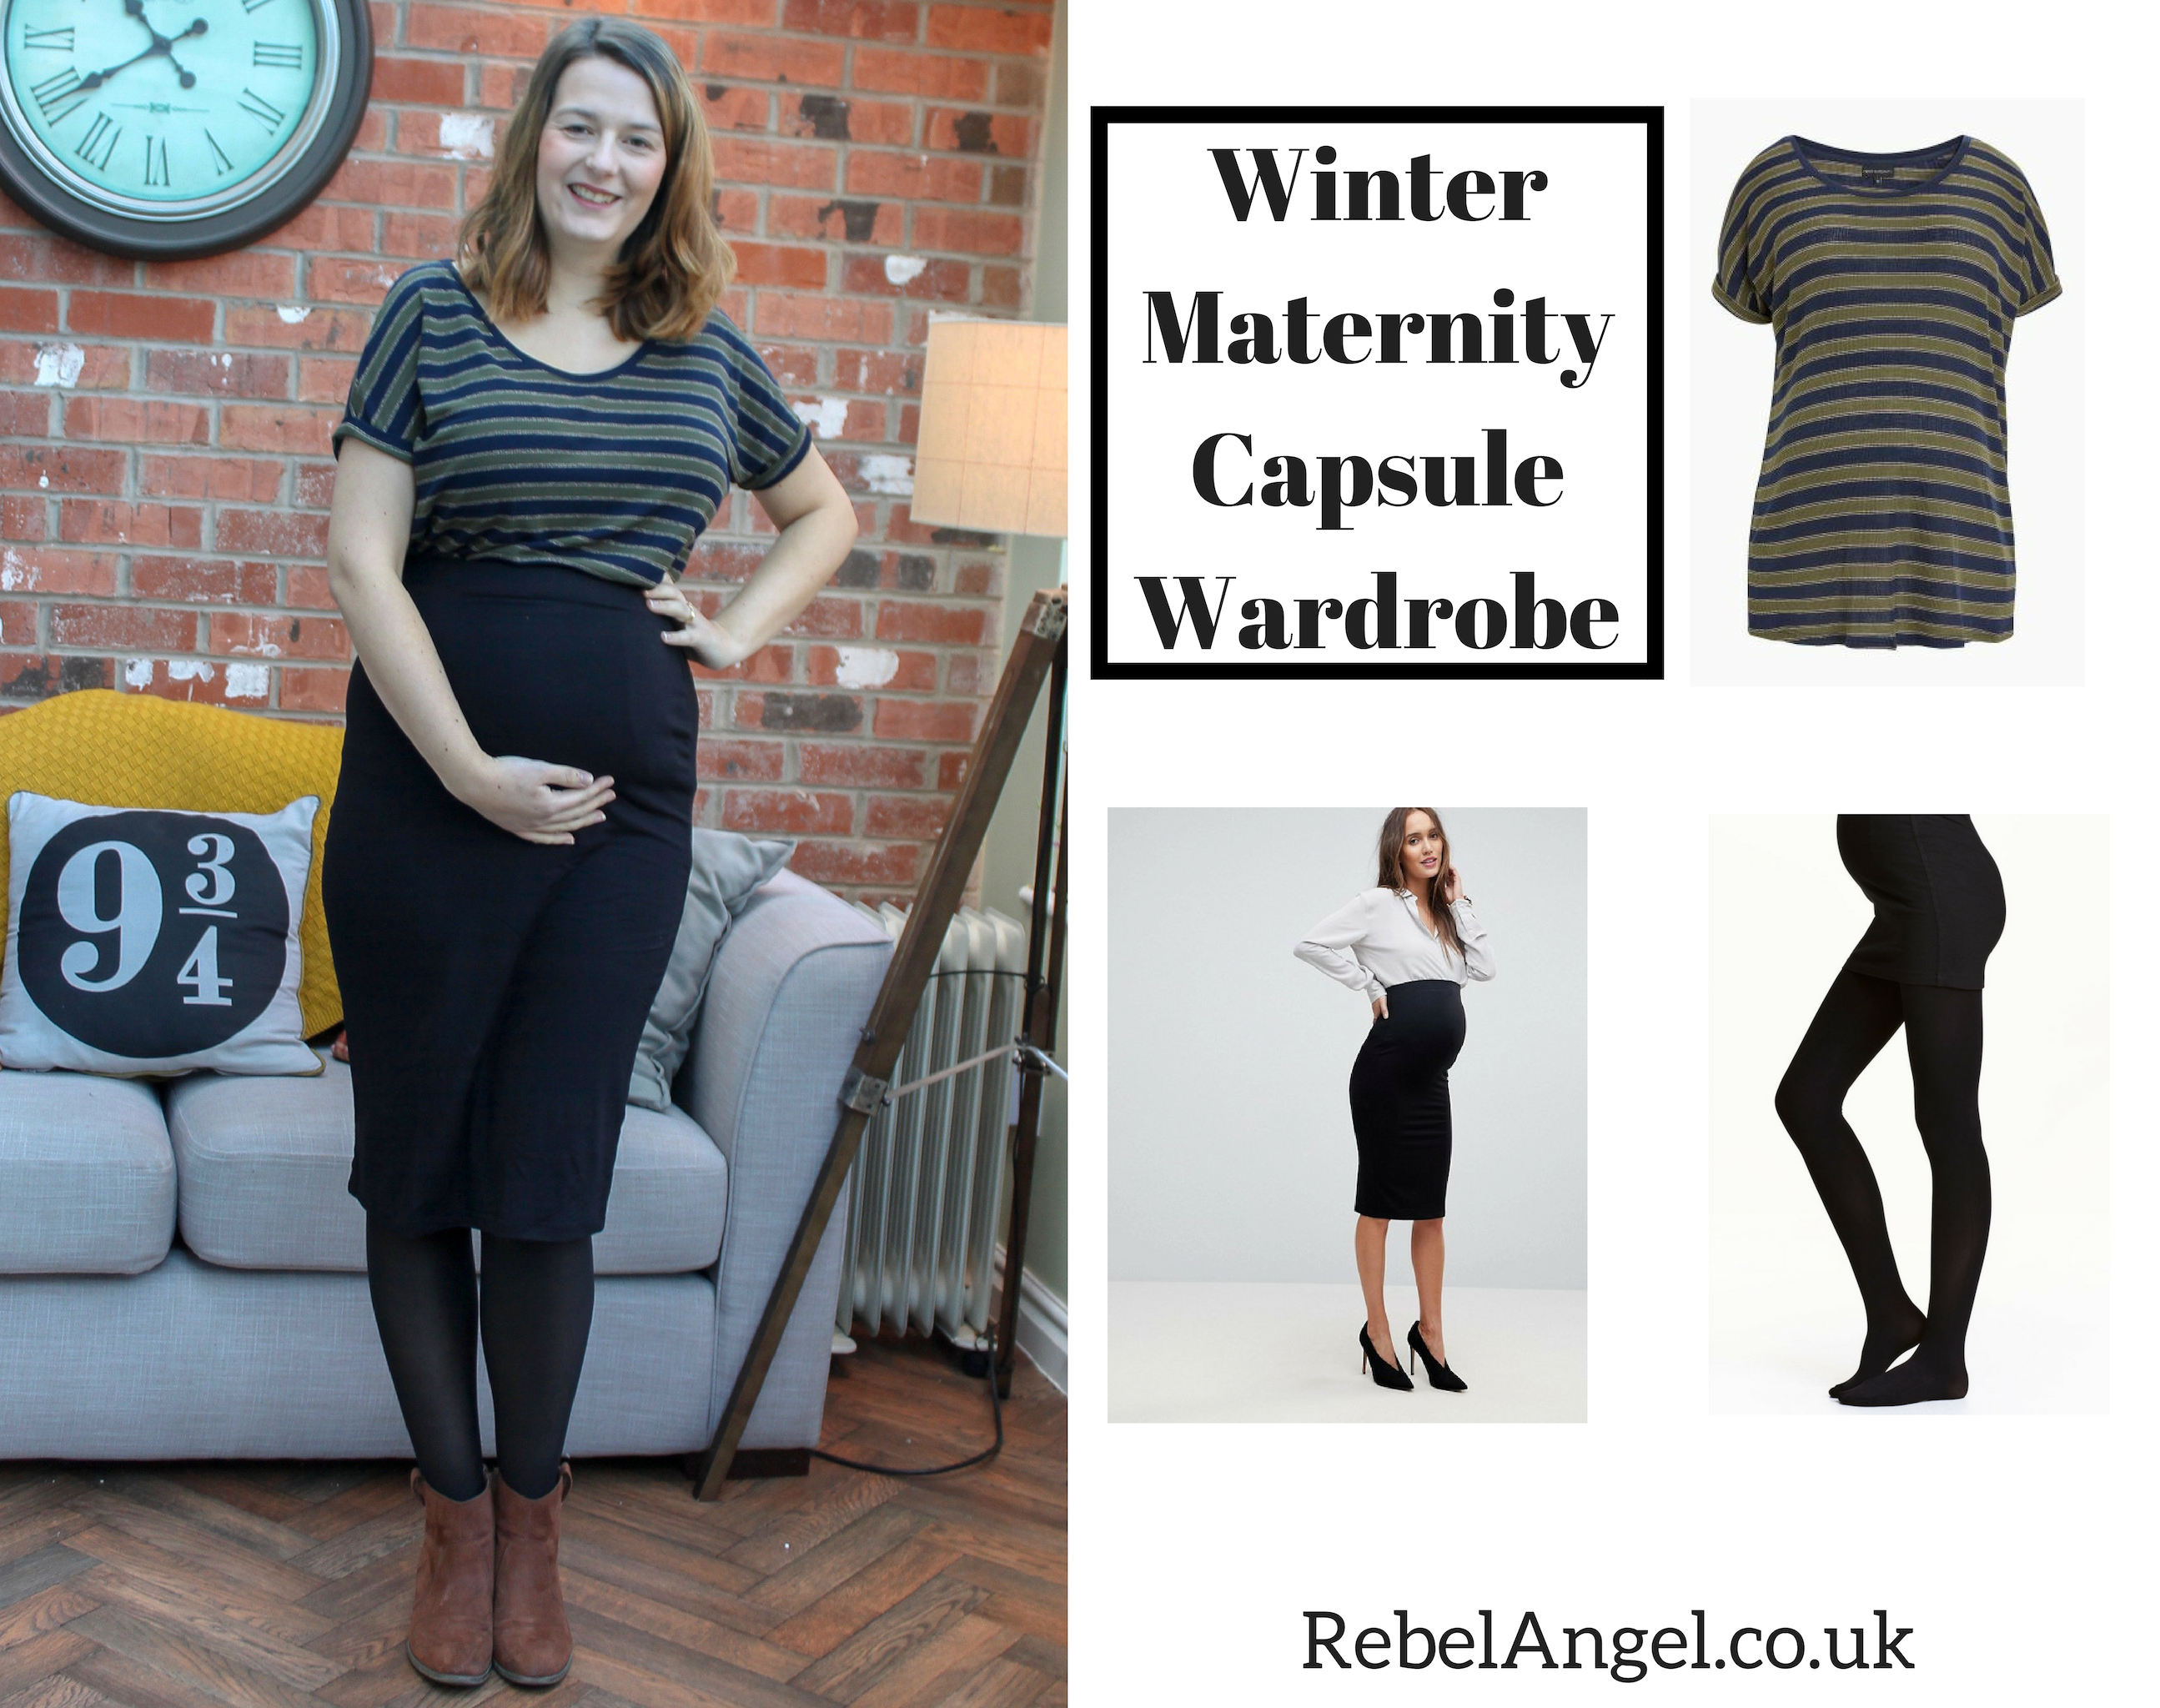 Winter Maternity Capsule Wardrobe outfit with striped top and pencil skirt